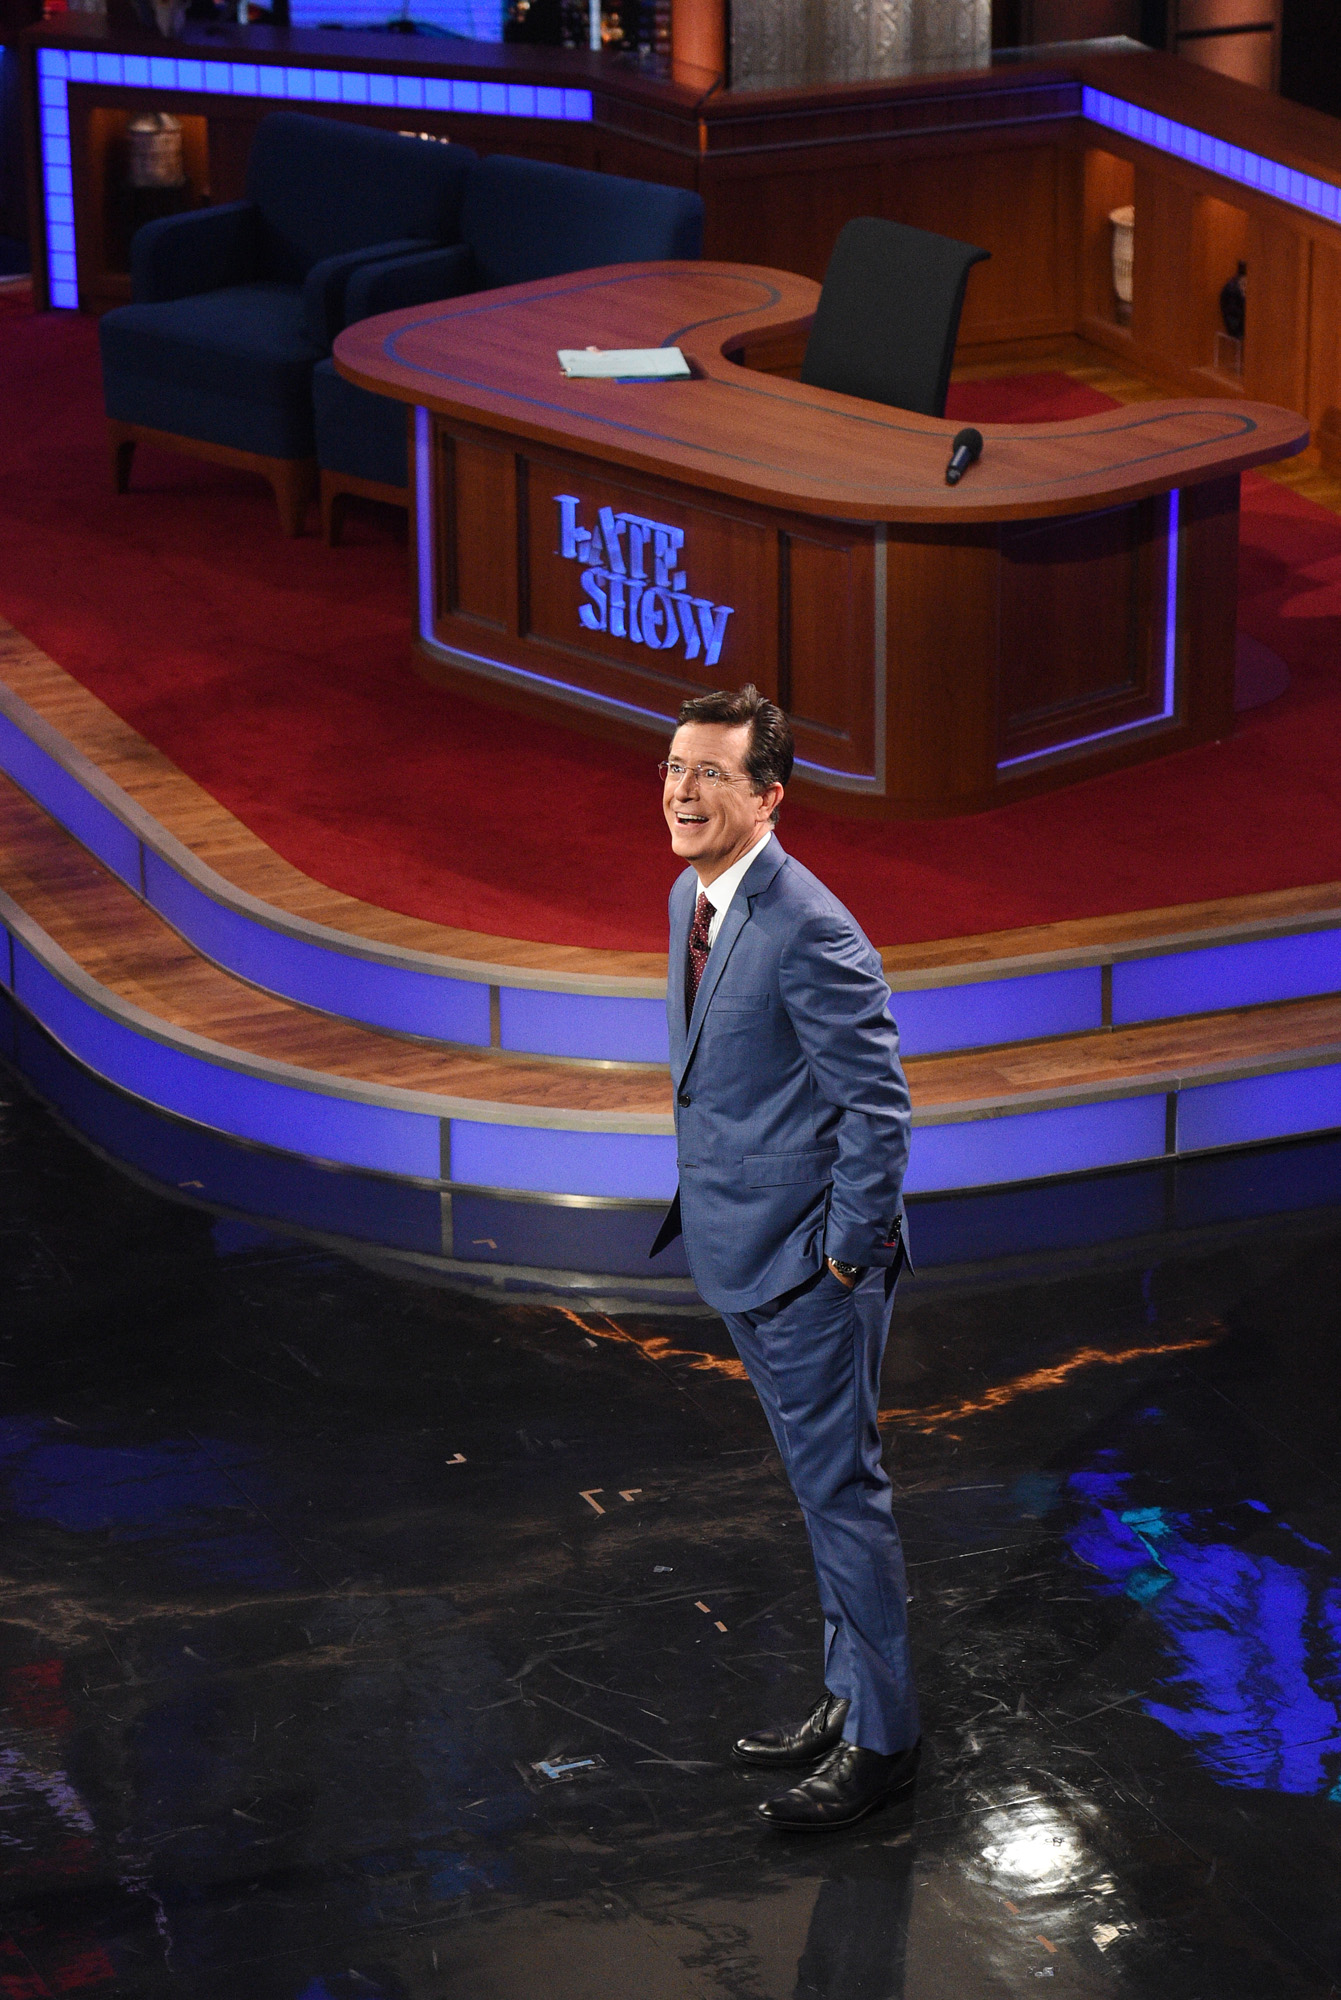 Stephen Colbert during the premiere episode of  The Late Show with Stephen Colbert  on Sept. 8, 2015.